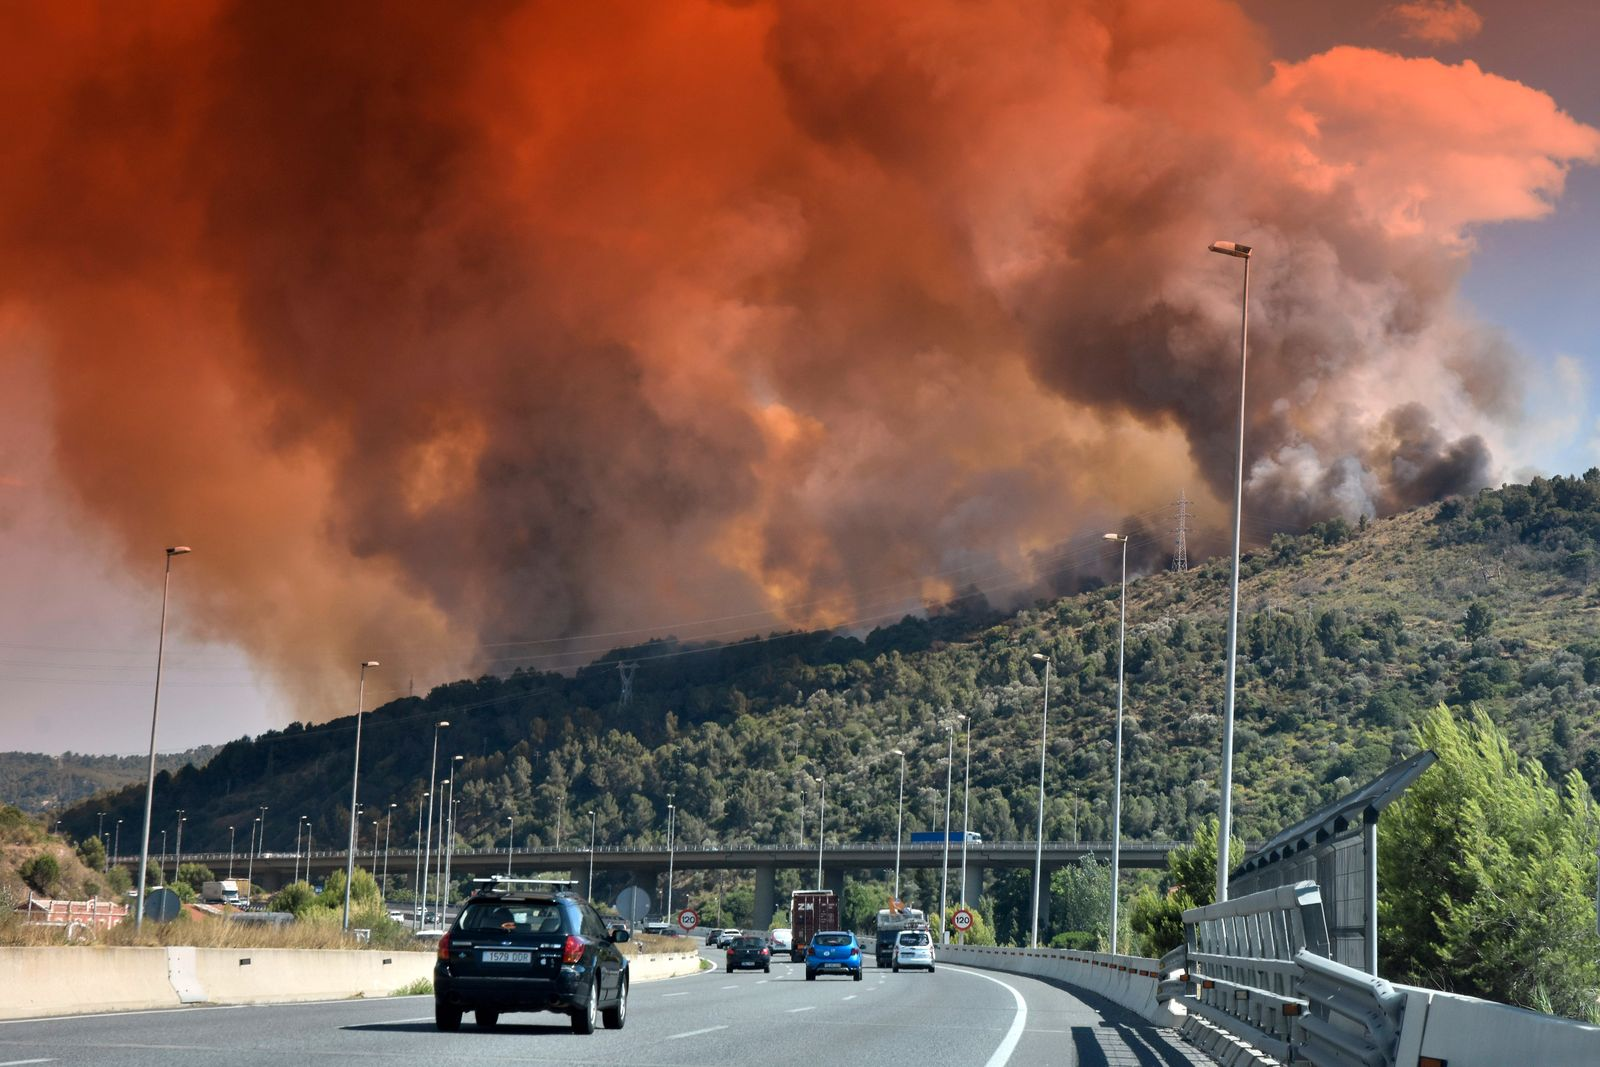 A cloud of smoke and fire in Castellvi de Rosanes seen over